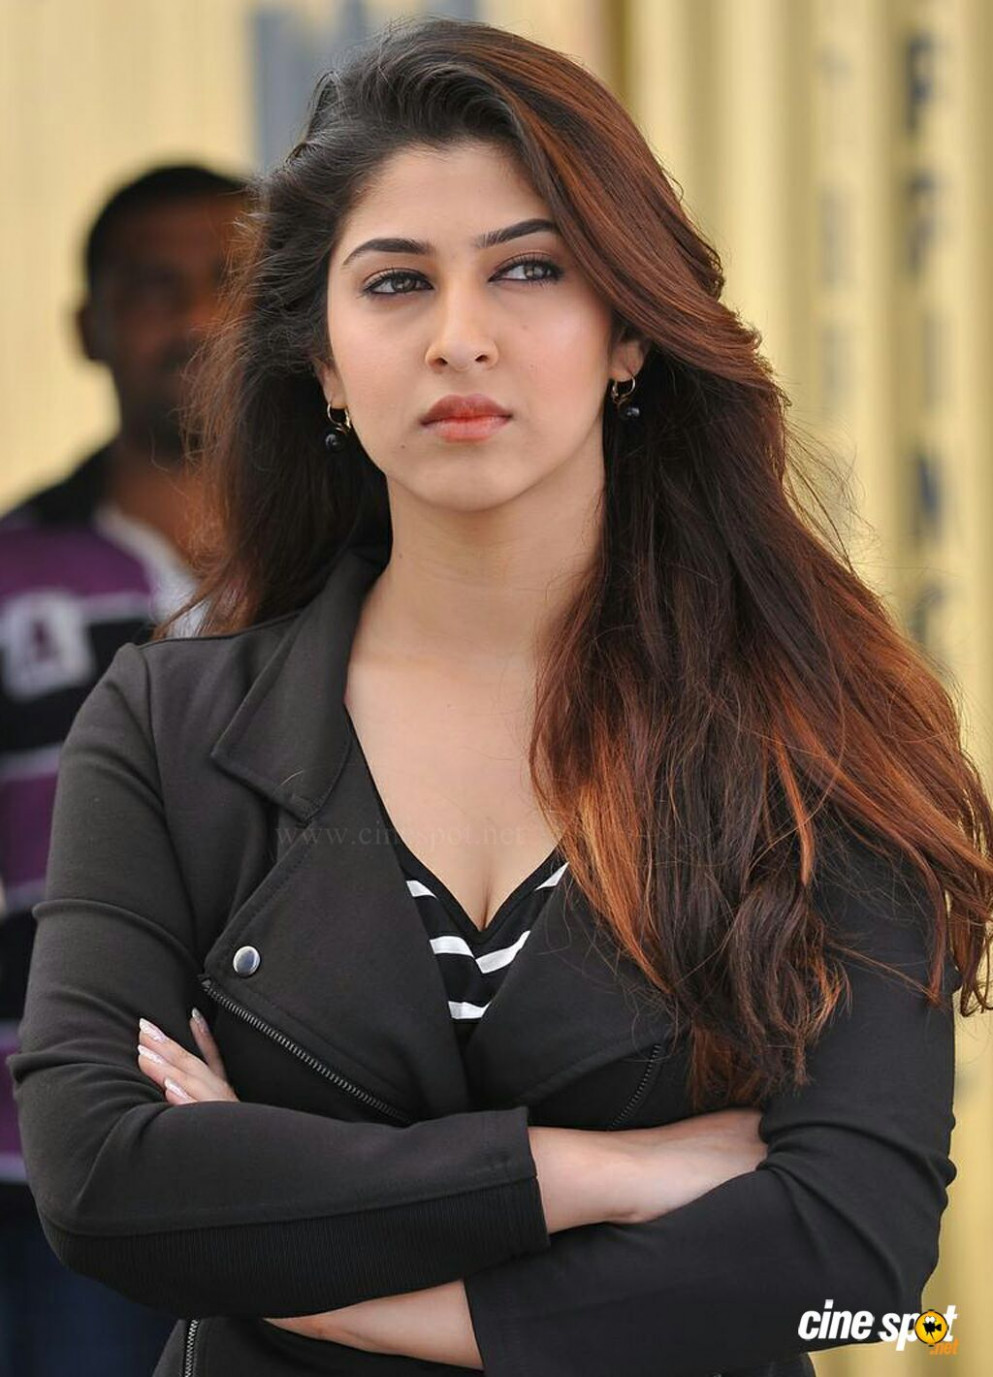 Pin by sam on tollywood queens in 2018 | Pinterest ...